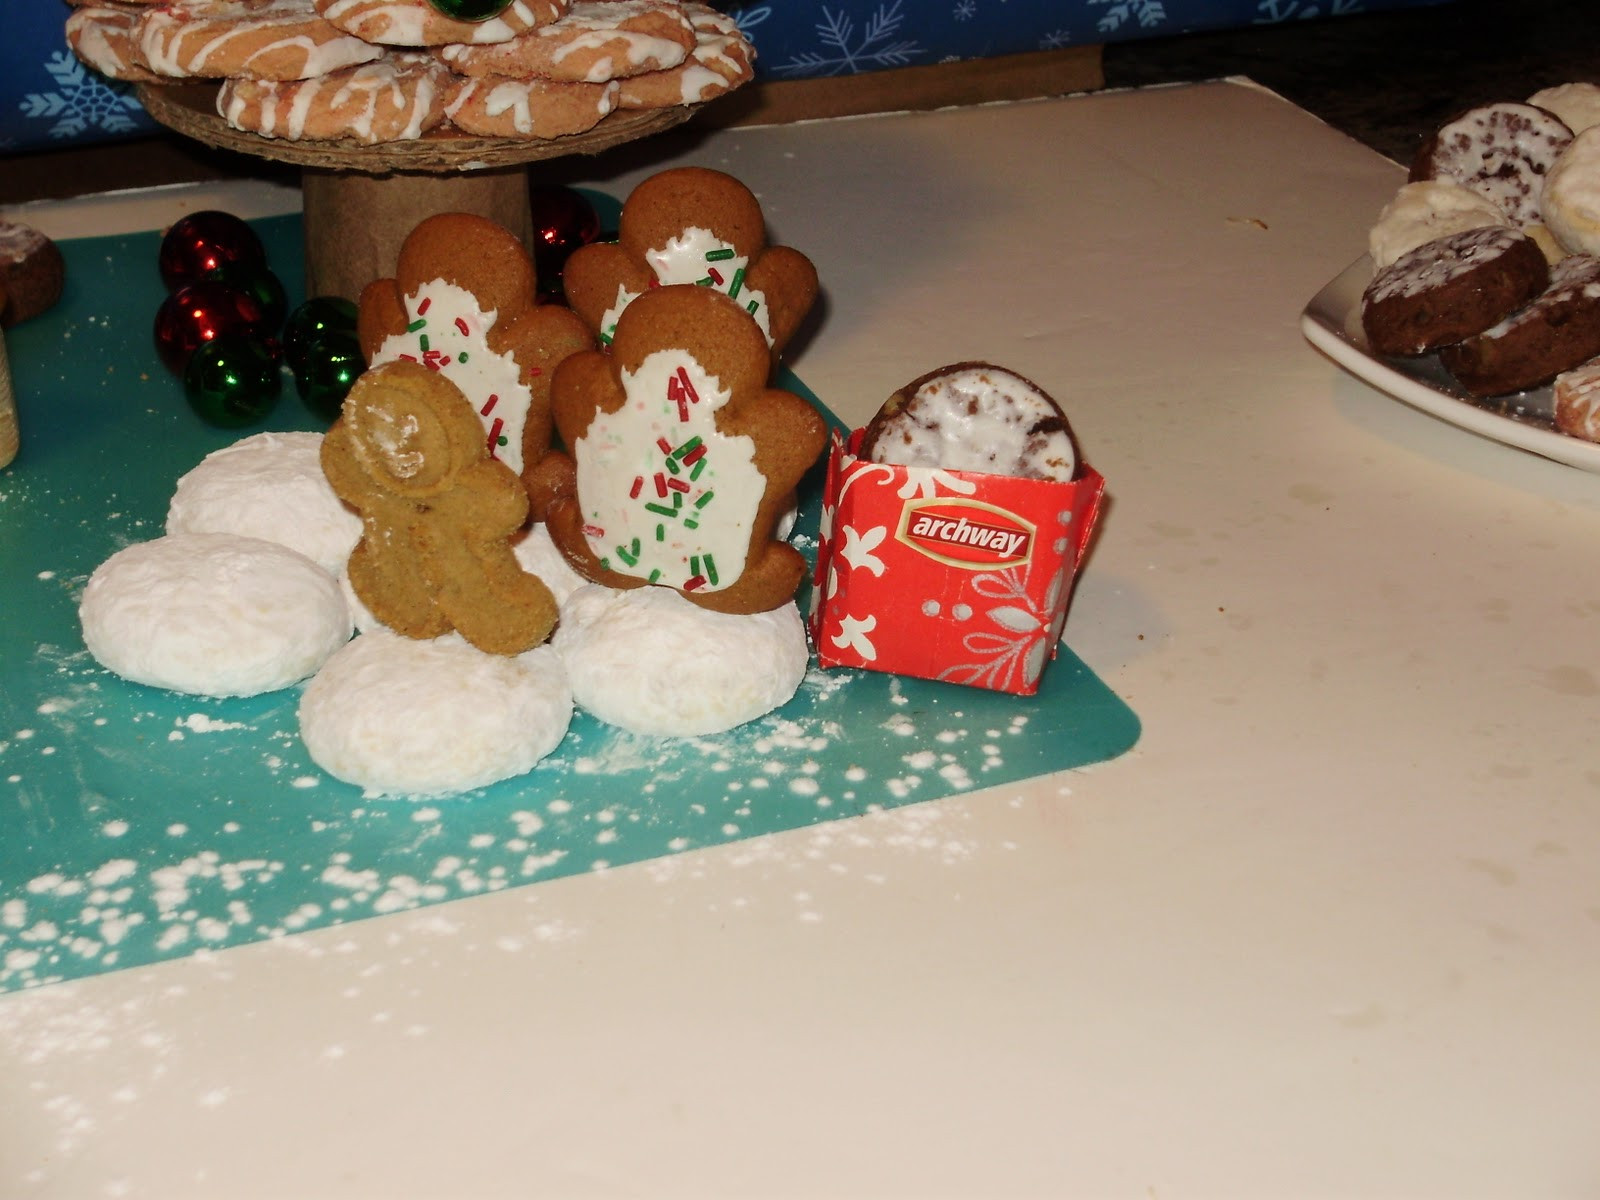 Archway Christmas Cookies  I LOVE your scene Chris So cute I kind of wish I had